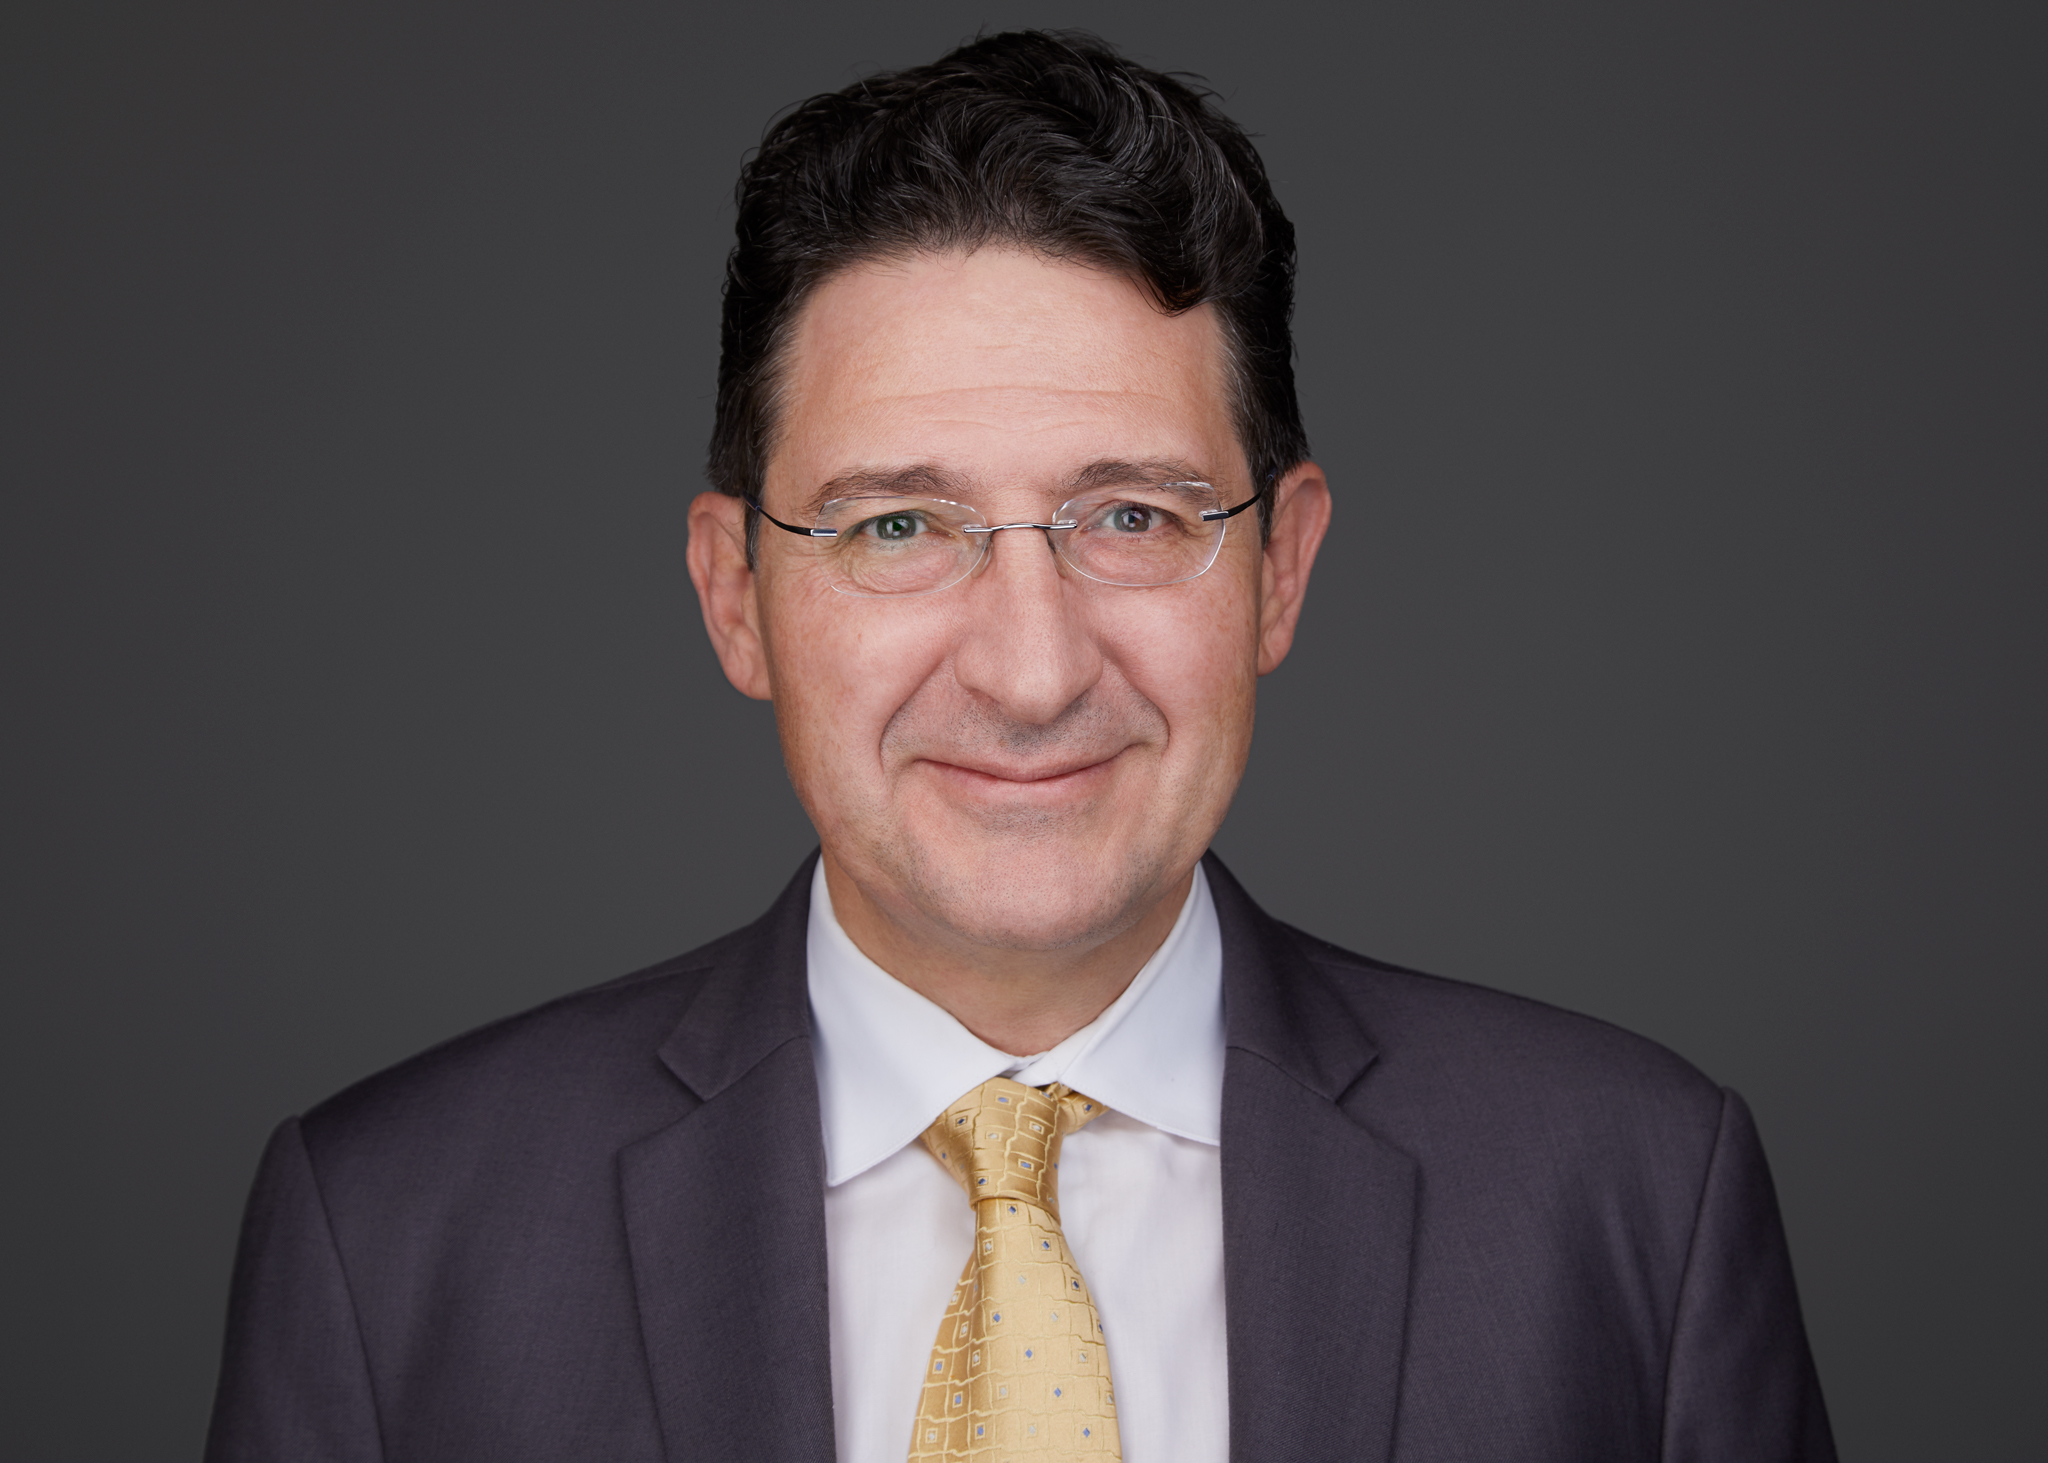 Dr. Gustavo Mahler Resigns as Chief Executive Officer of AGC Biologics, Patricio Massera to Succeed as CEO Effective May 1st, 2019